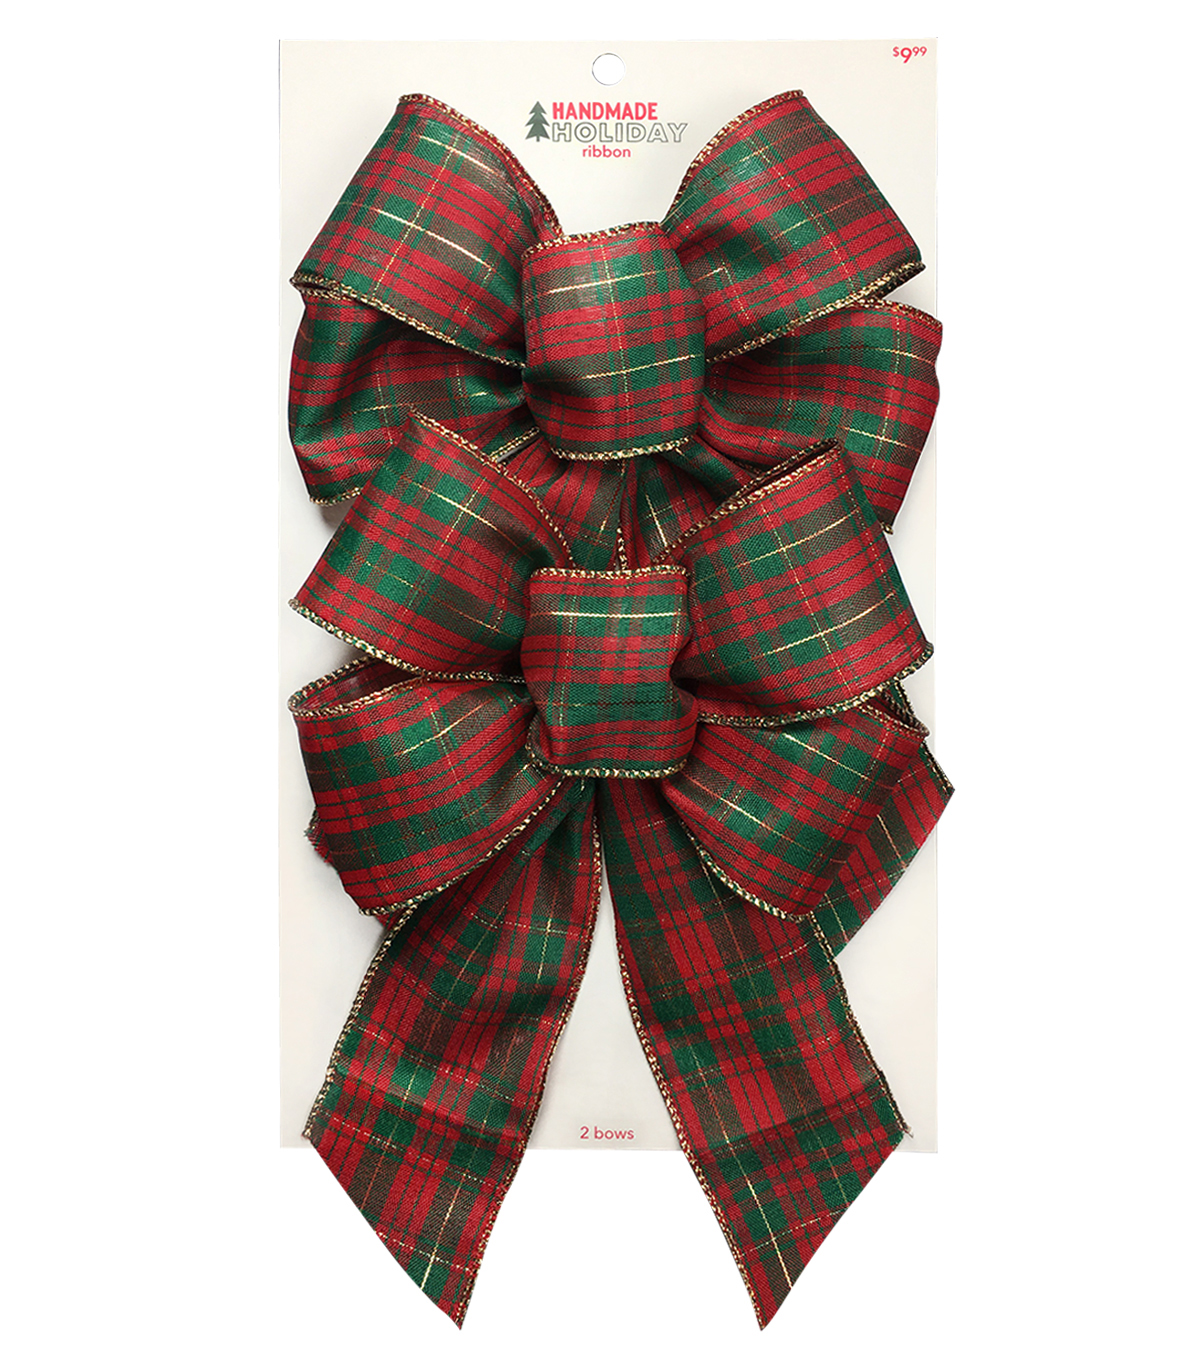 Handmade Holiday Christmas 2 pk Bows-Red & Green Plaid